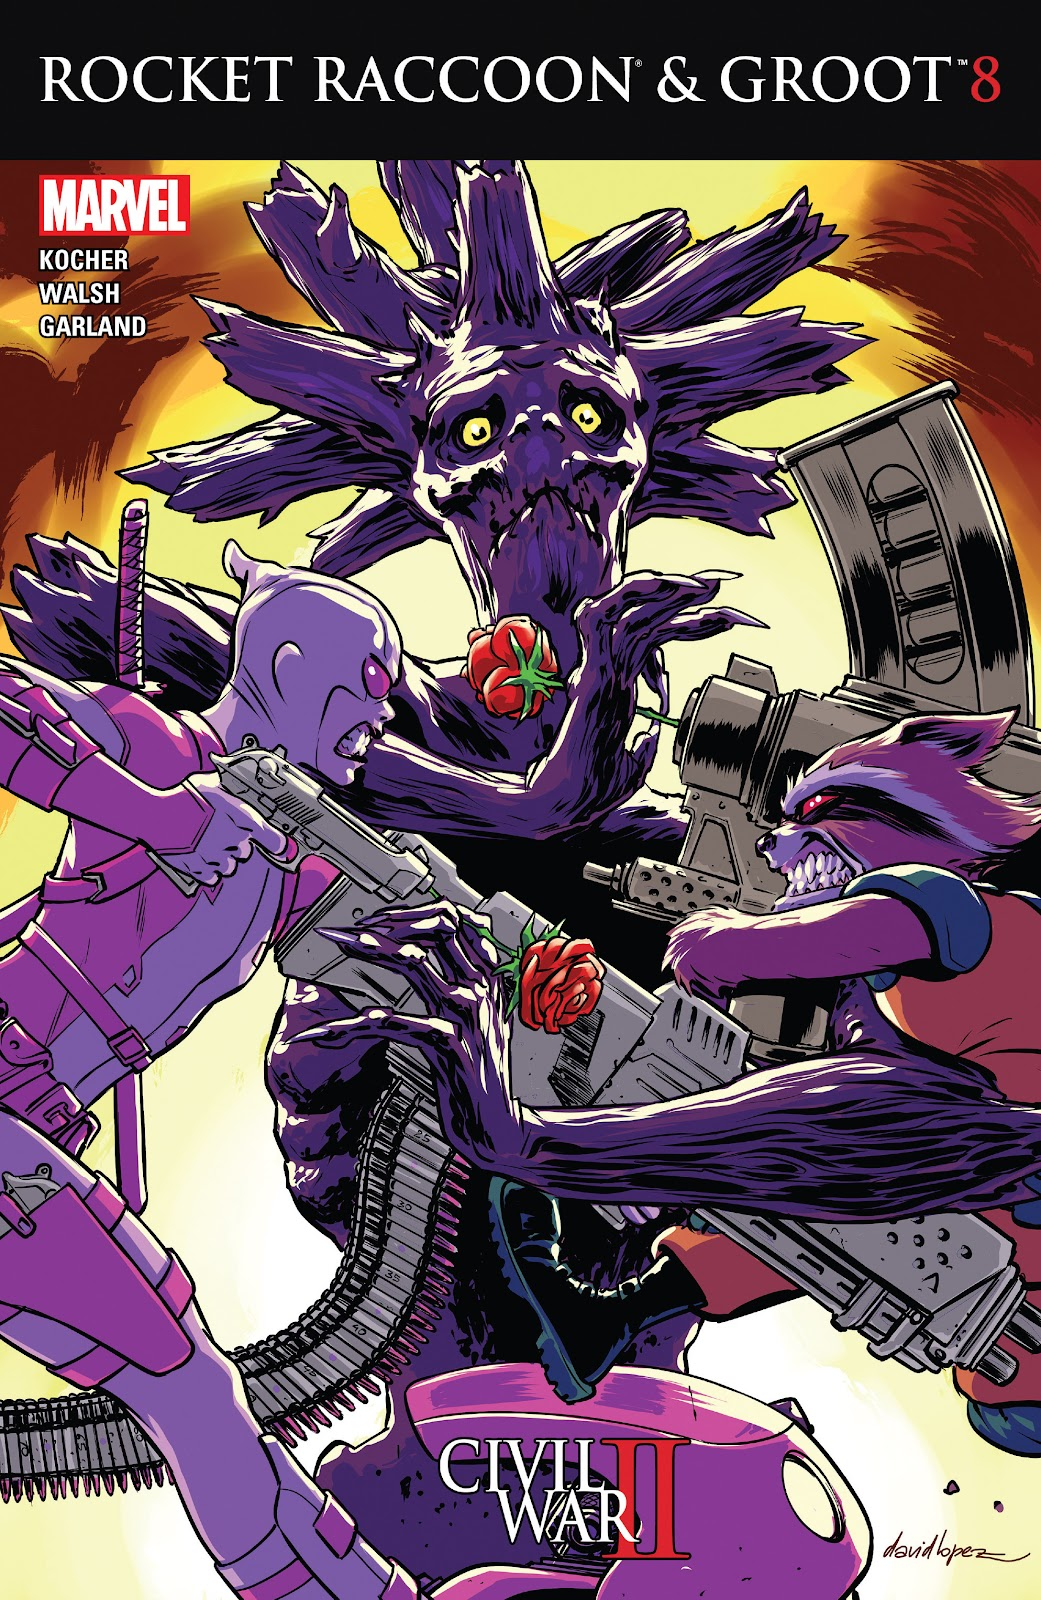 Comic Rocket Raccoon & Groot issue 8